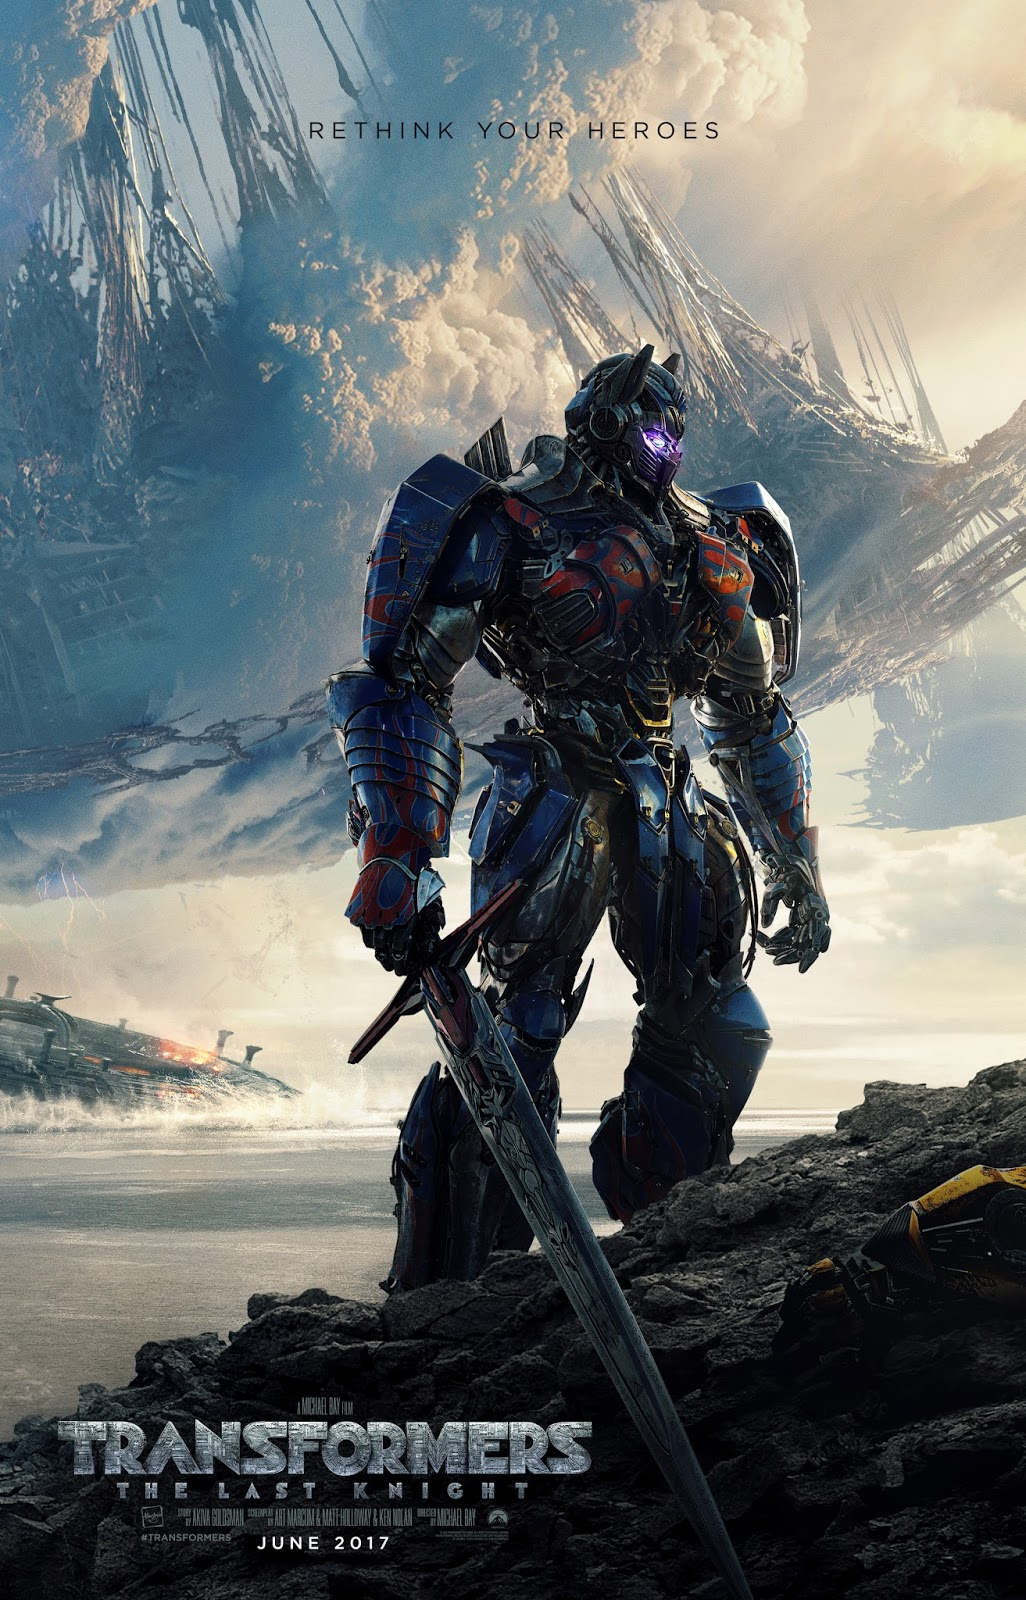 TRANSFORMERS: THE LAST KNIGHT IMAX Fan Event: Get Free Tickets 4/4/2017  via  www.productreviewmom.com